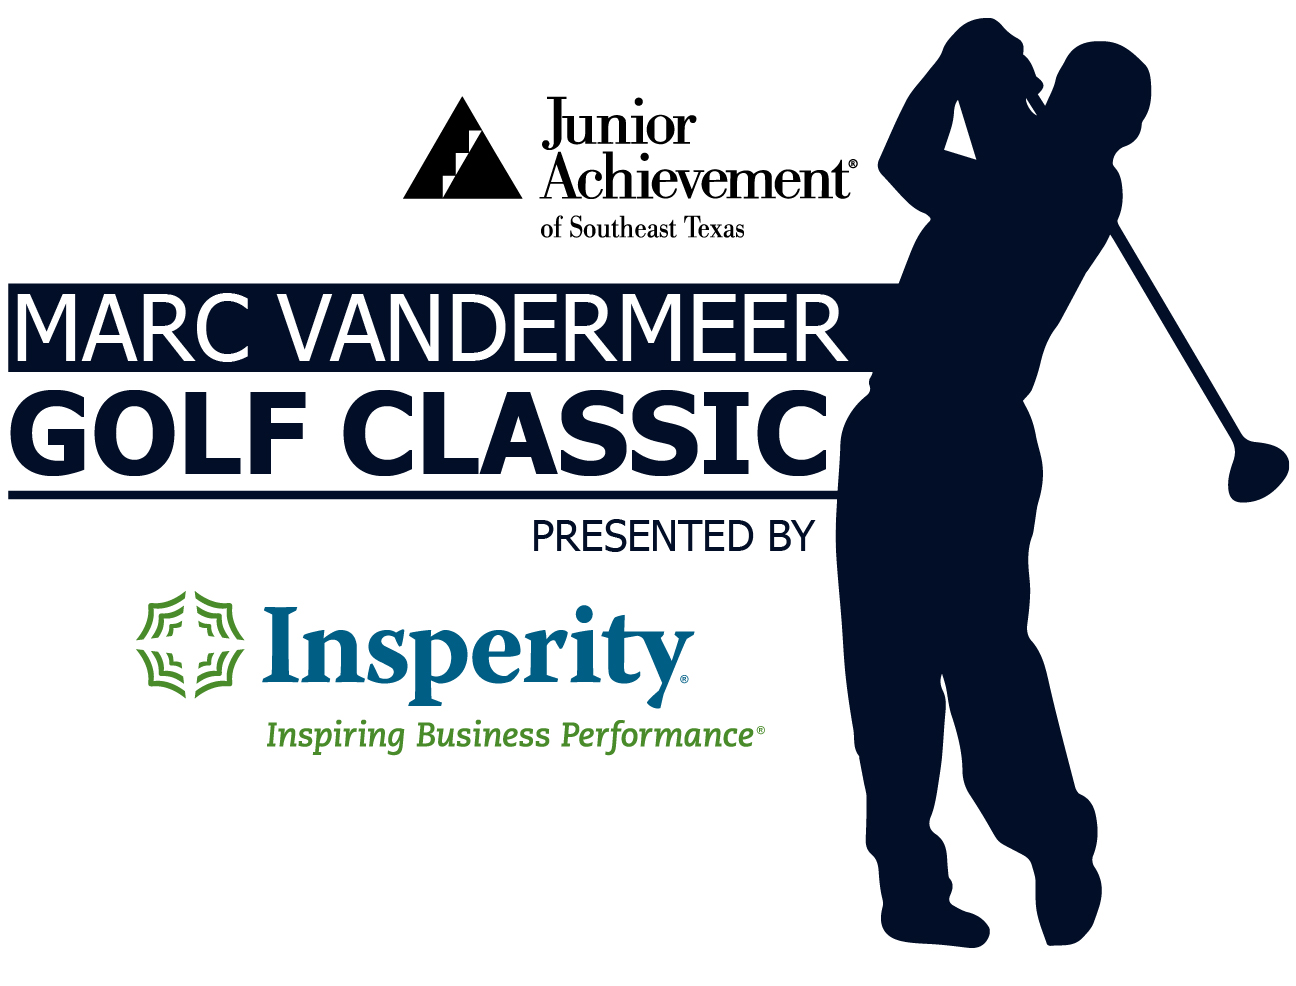 2018 Marc Vandermeer Golf Classic presented by Insperity